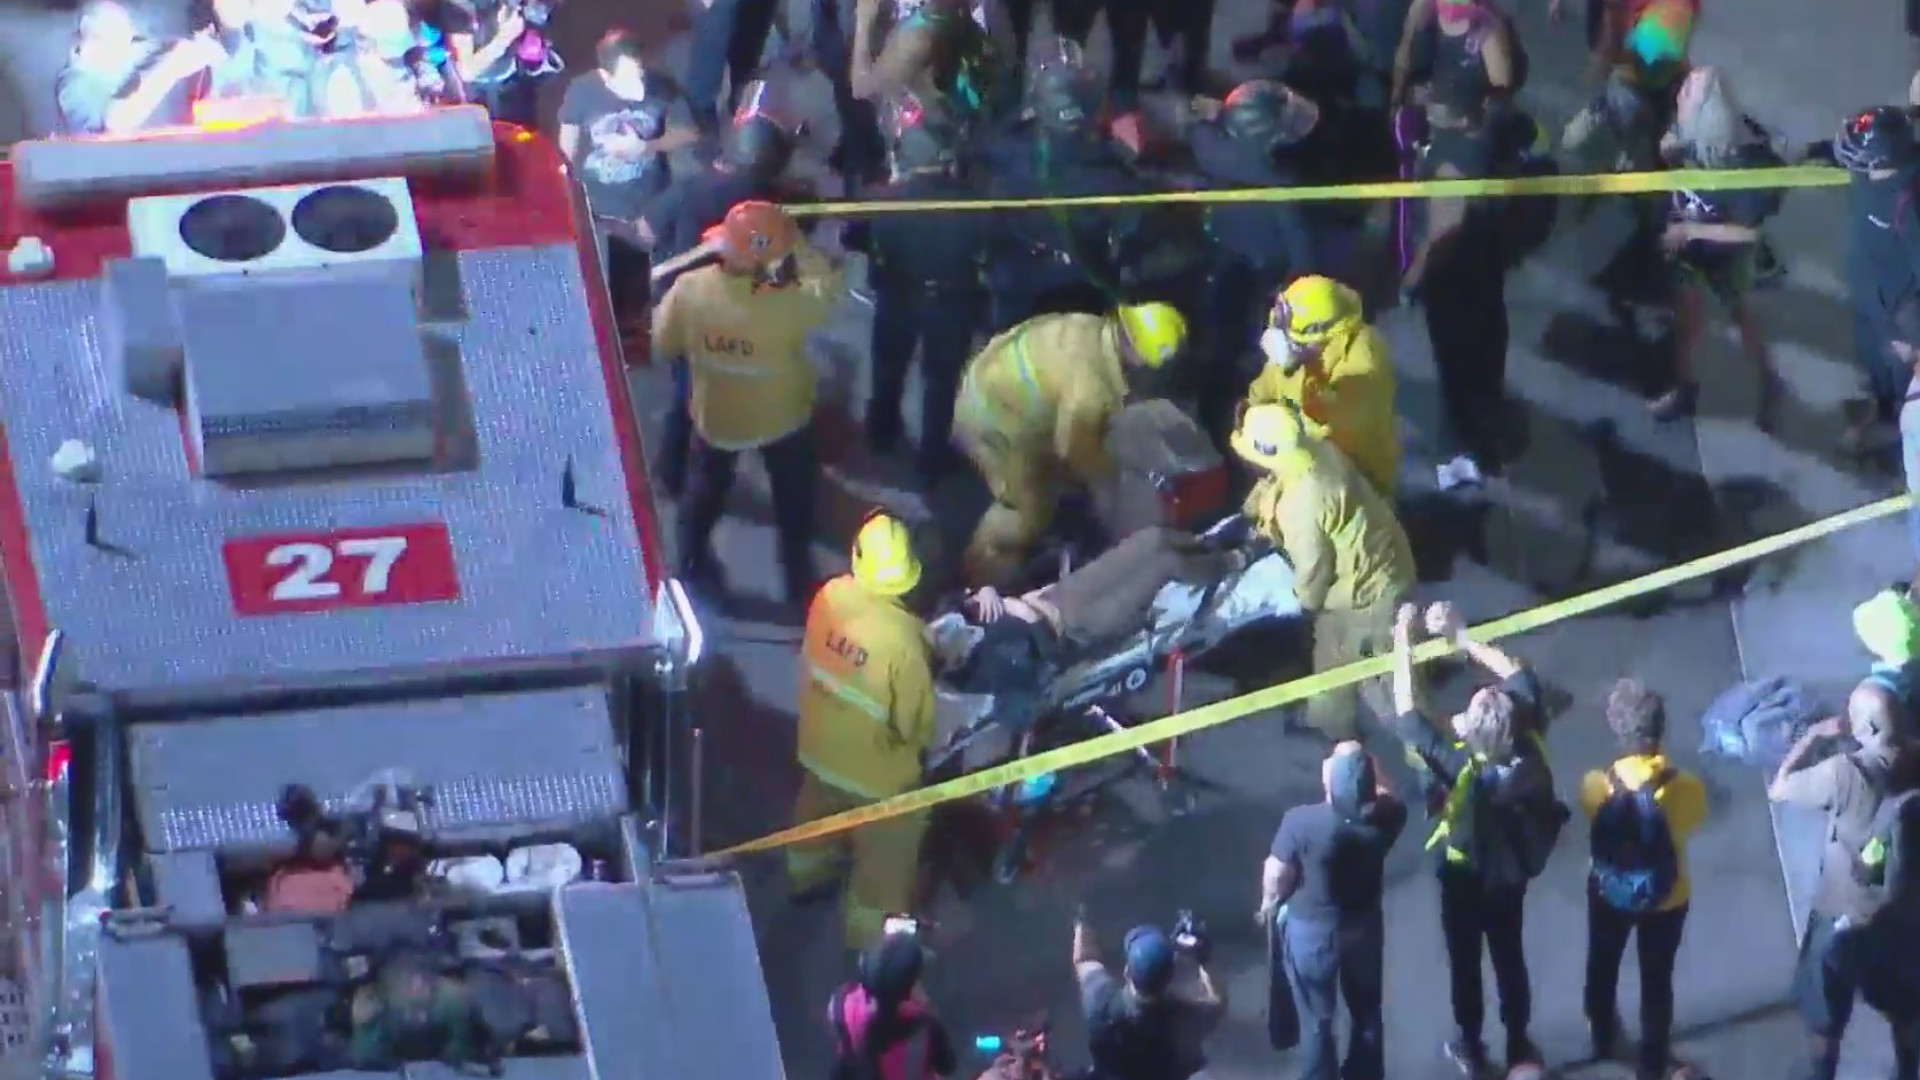 At least one person was injured after a truck plowed through a crowd of demonstrators in Hollywood, protesting the killing of Breonna Taylor on Sept. 24, 2020. (KTLA)